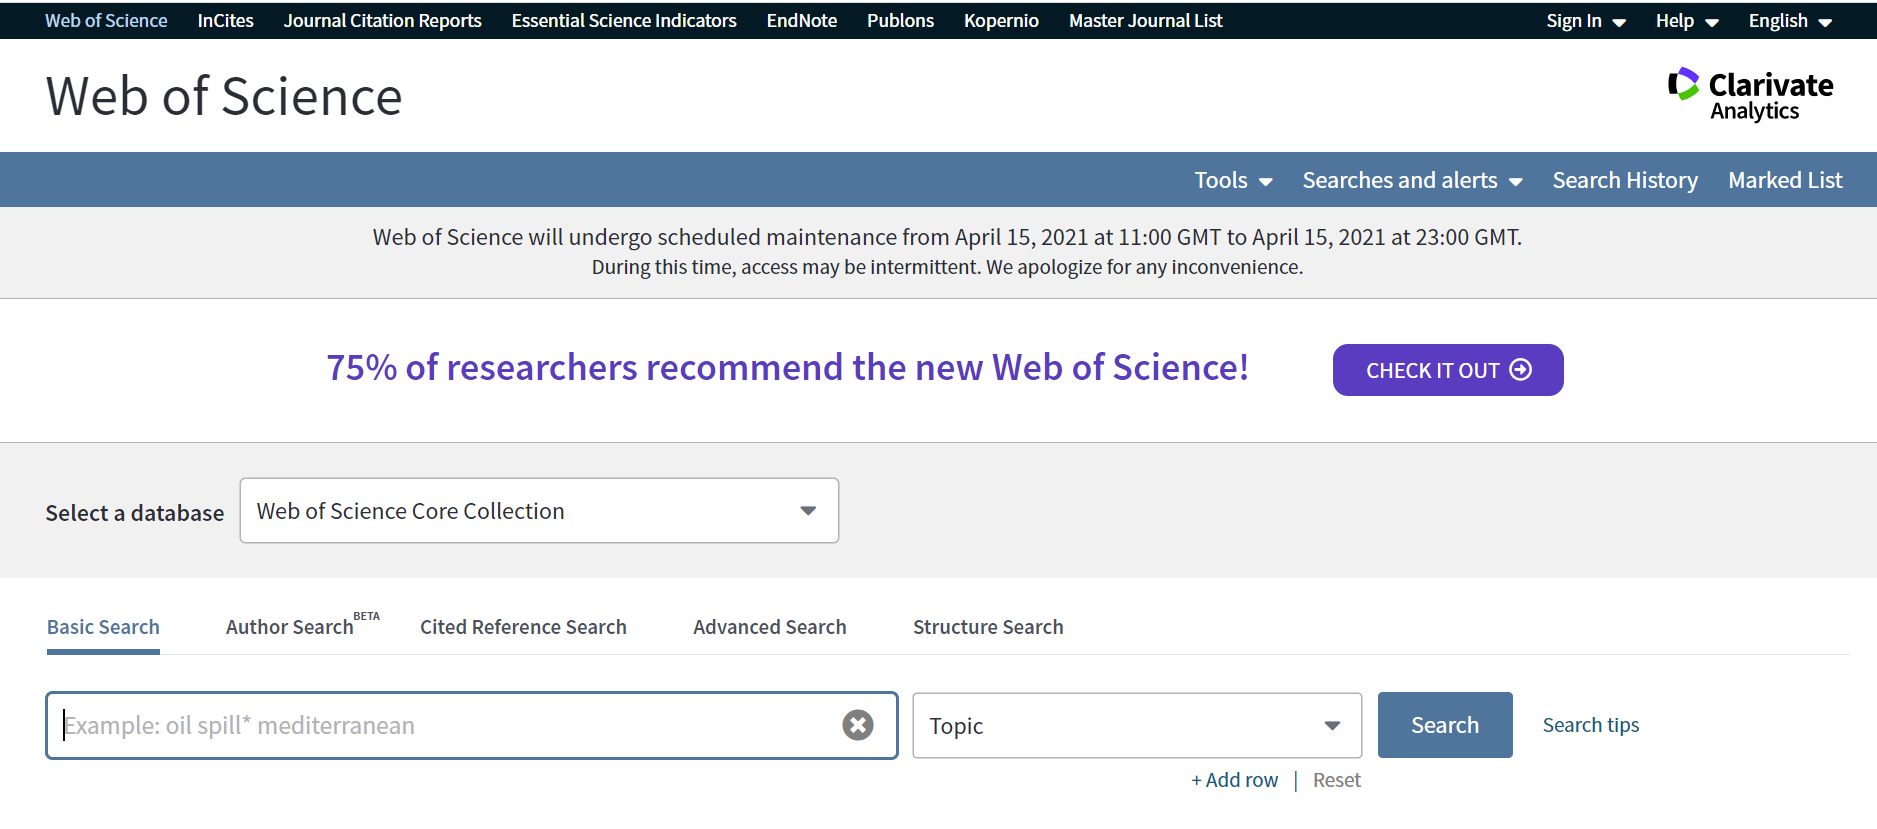 The Web of Science webpage